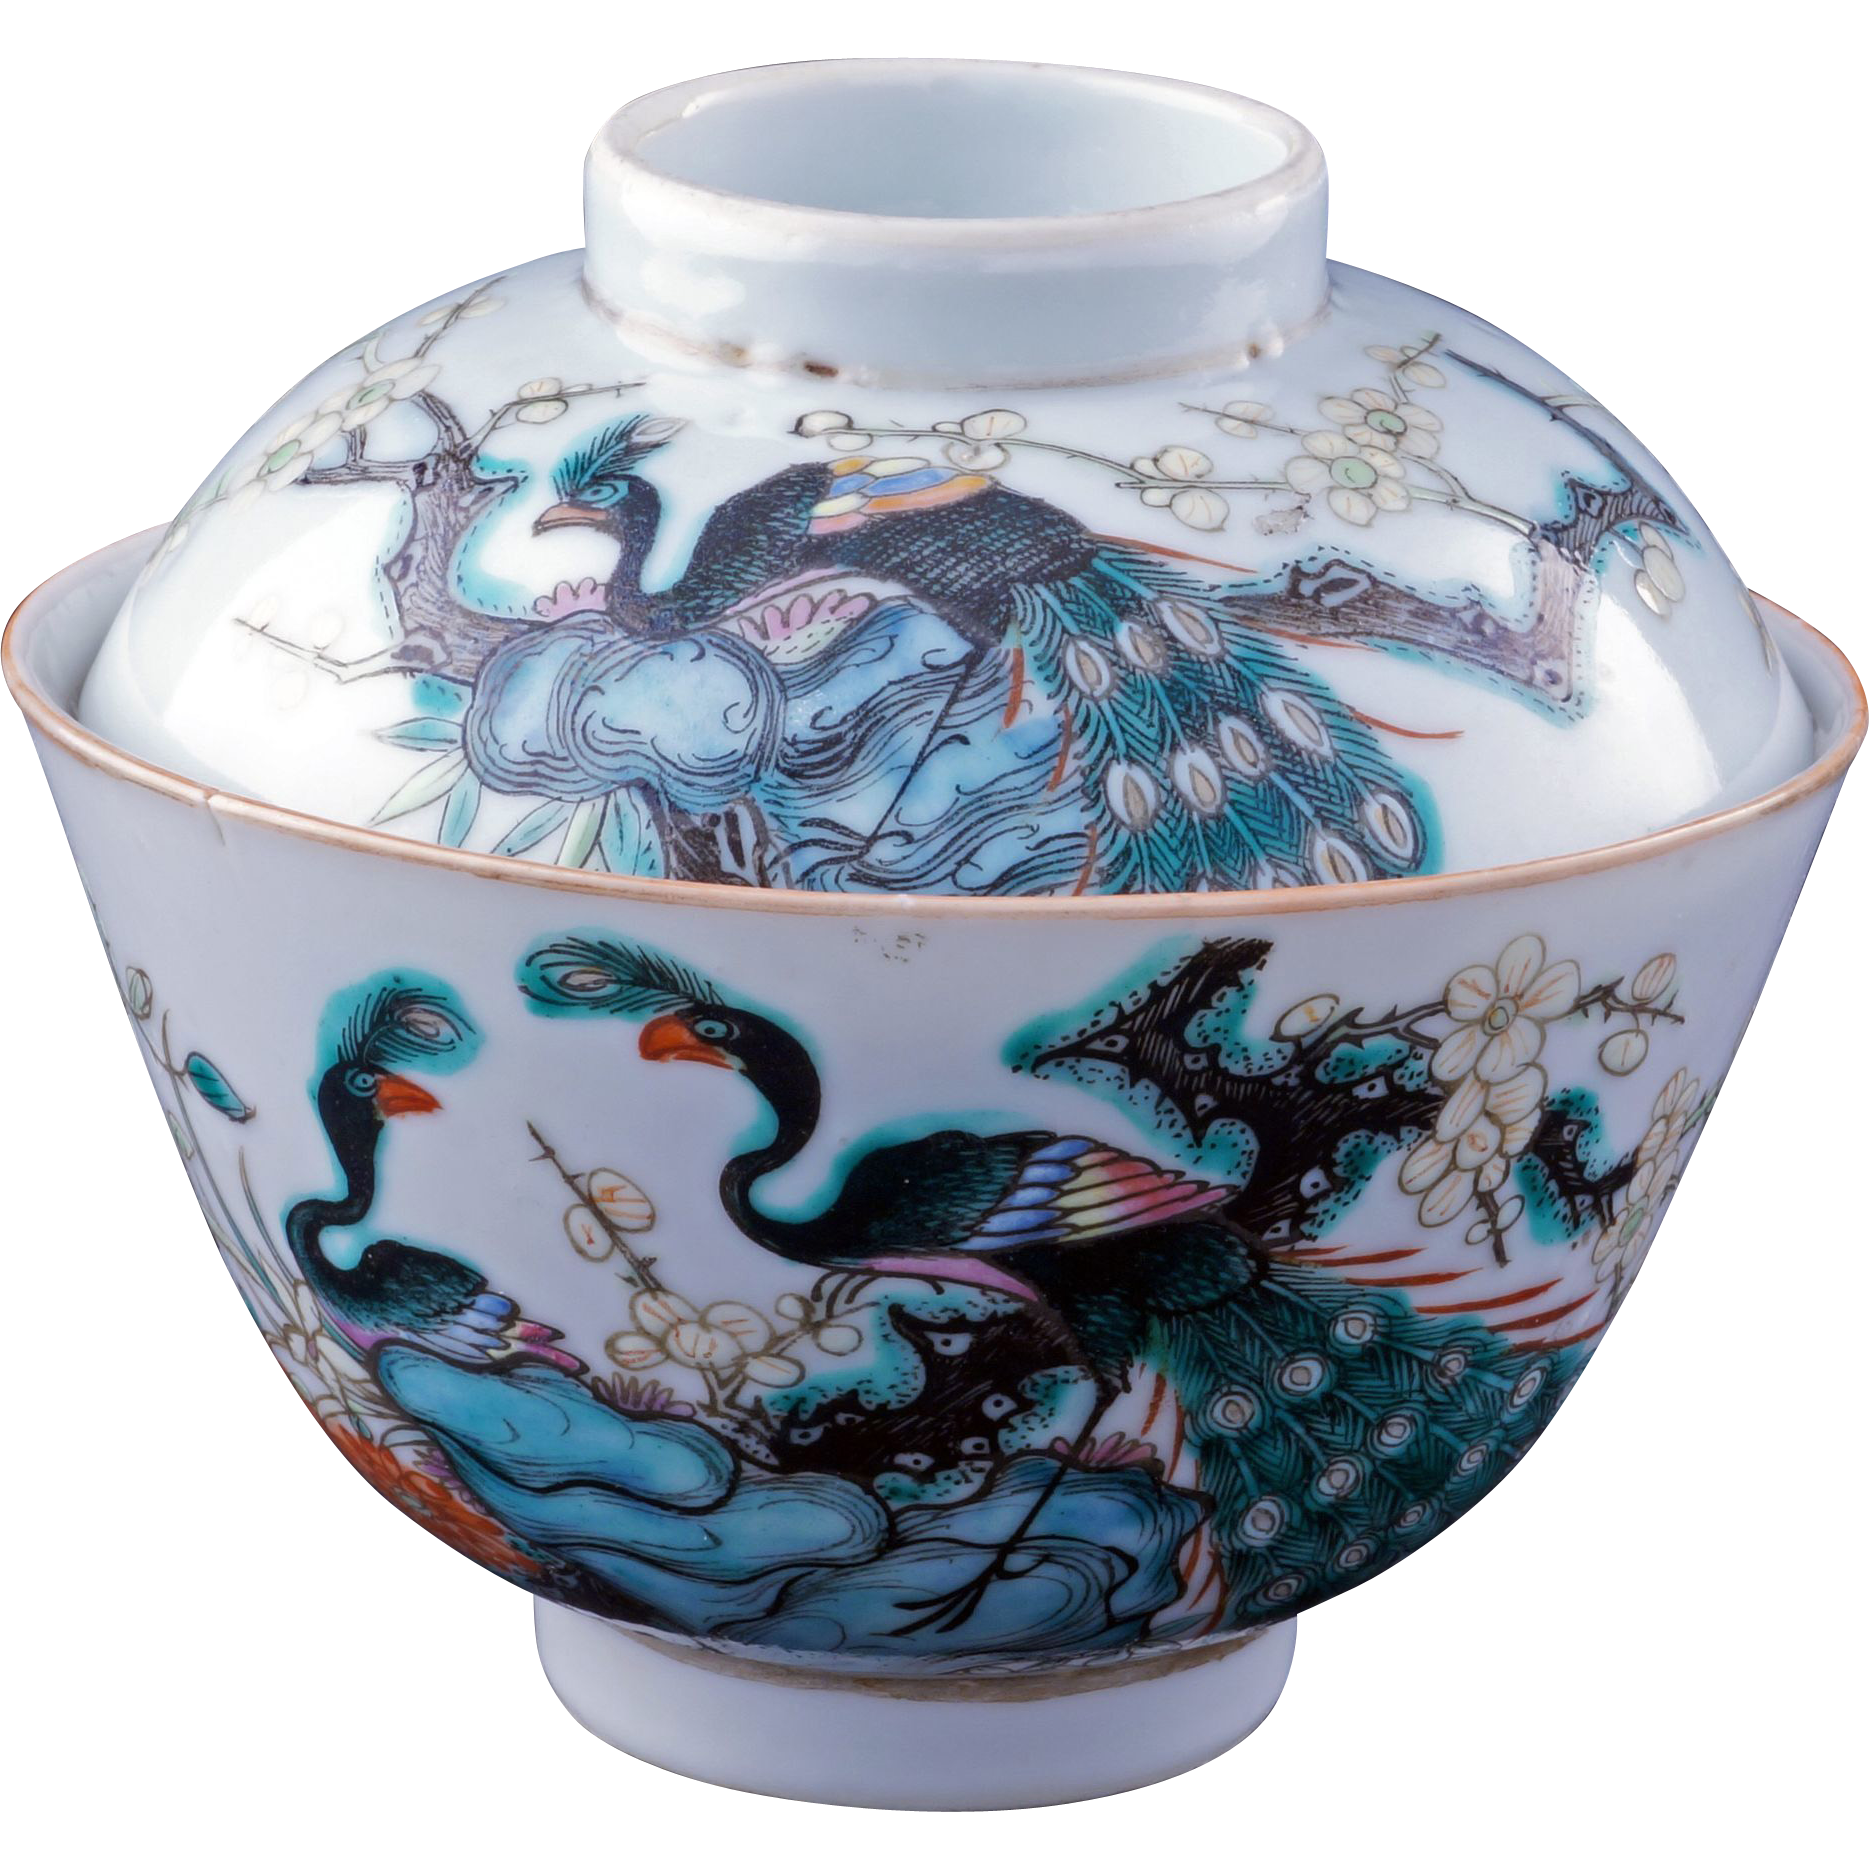 Chinese Porcelain Tea Bowl And Matching Lid With Peacocks